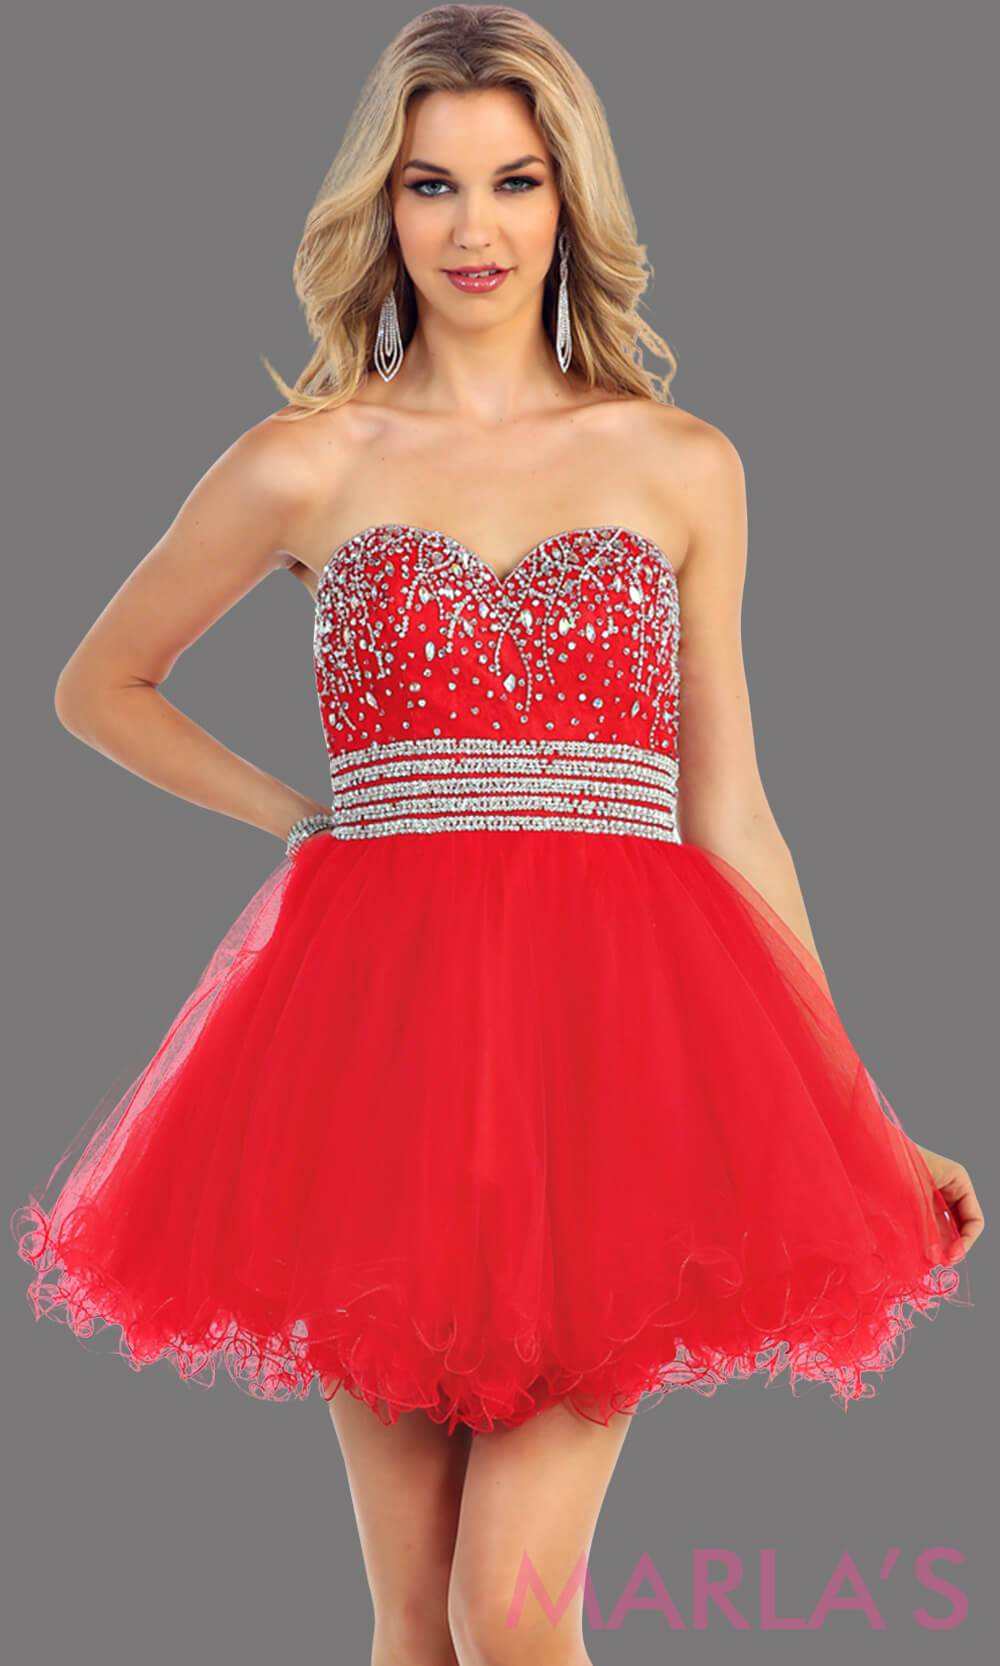 Short puffy red dress with a beaded bodice features a sweetheart neckline and empire waist that flows into layers of tulle. This red dress has a corset back and is avail in plus size. Perfect for grade 8 graduation